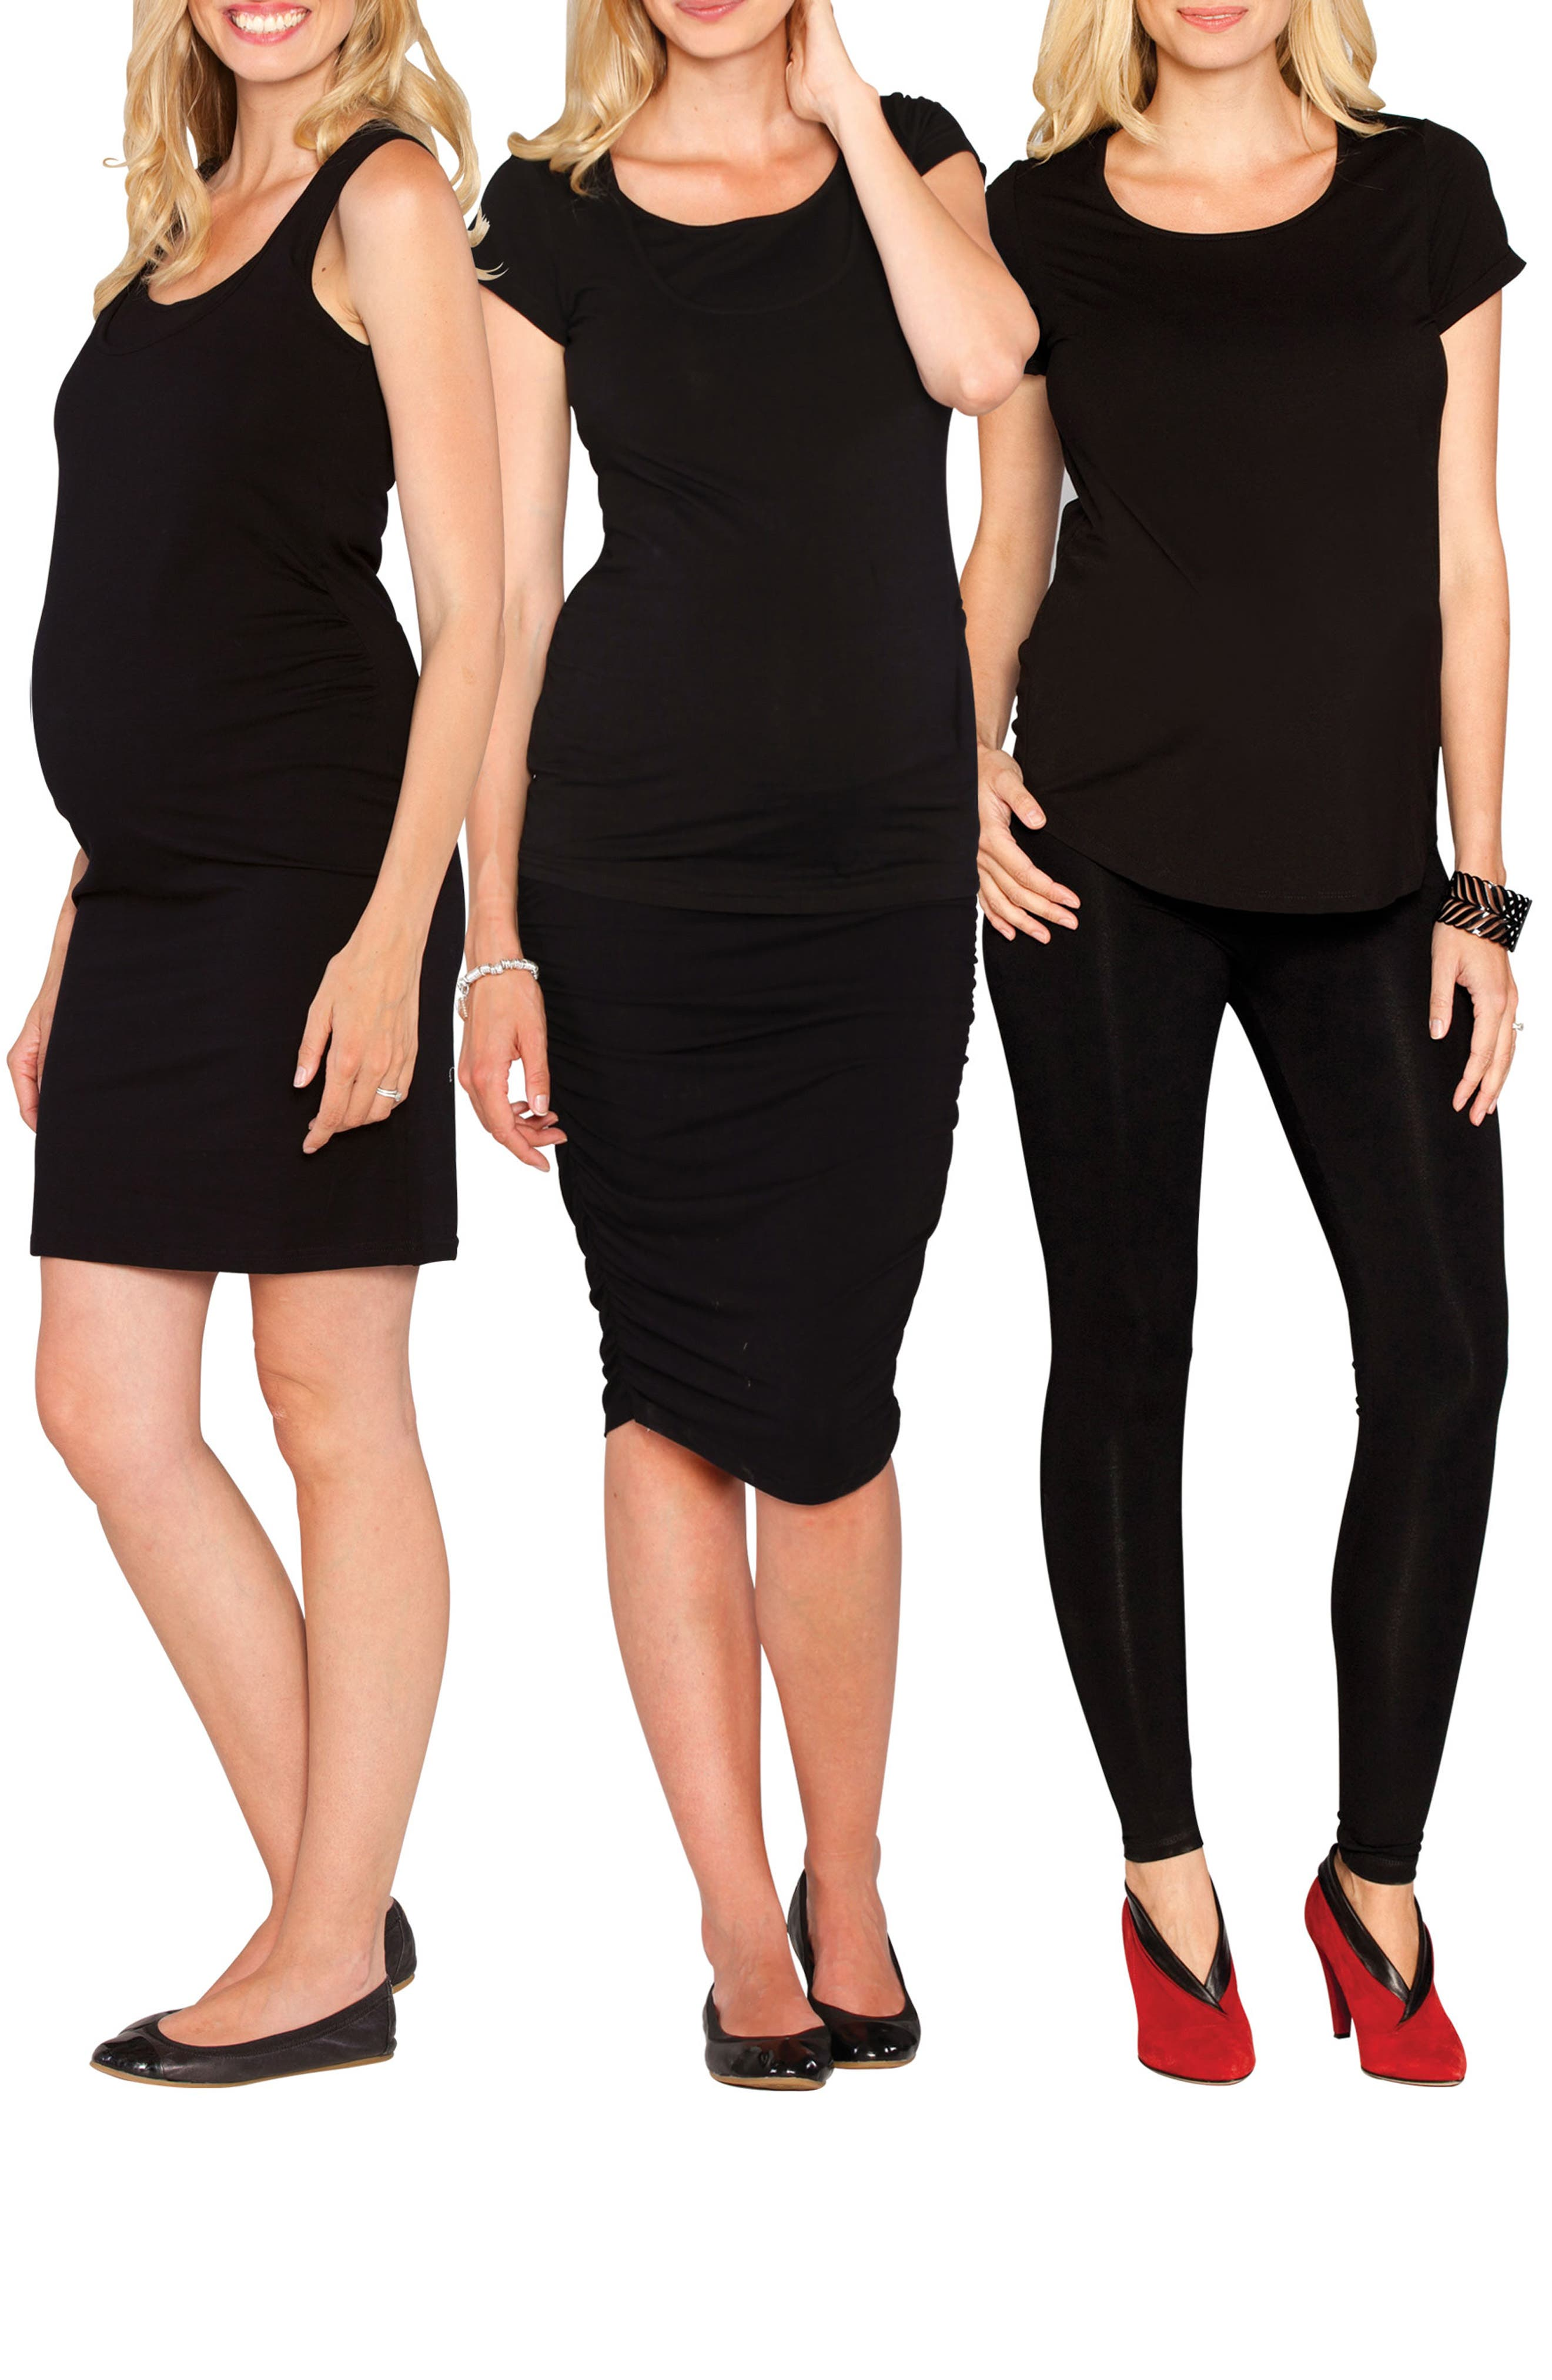 Main Image - Angel Maternity The Bumper Essential 4-Piece Maternity Starter Kit